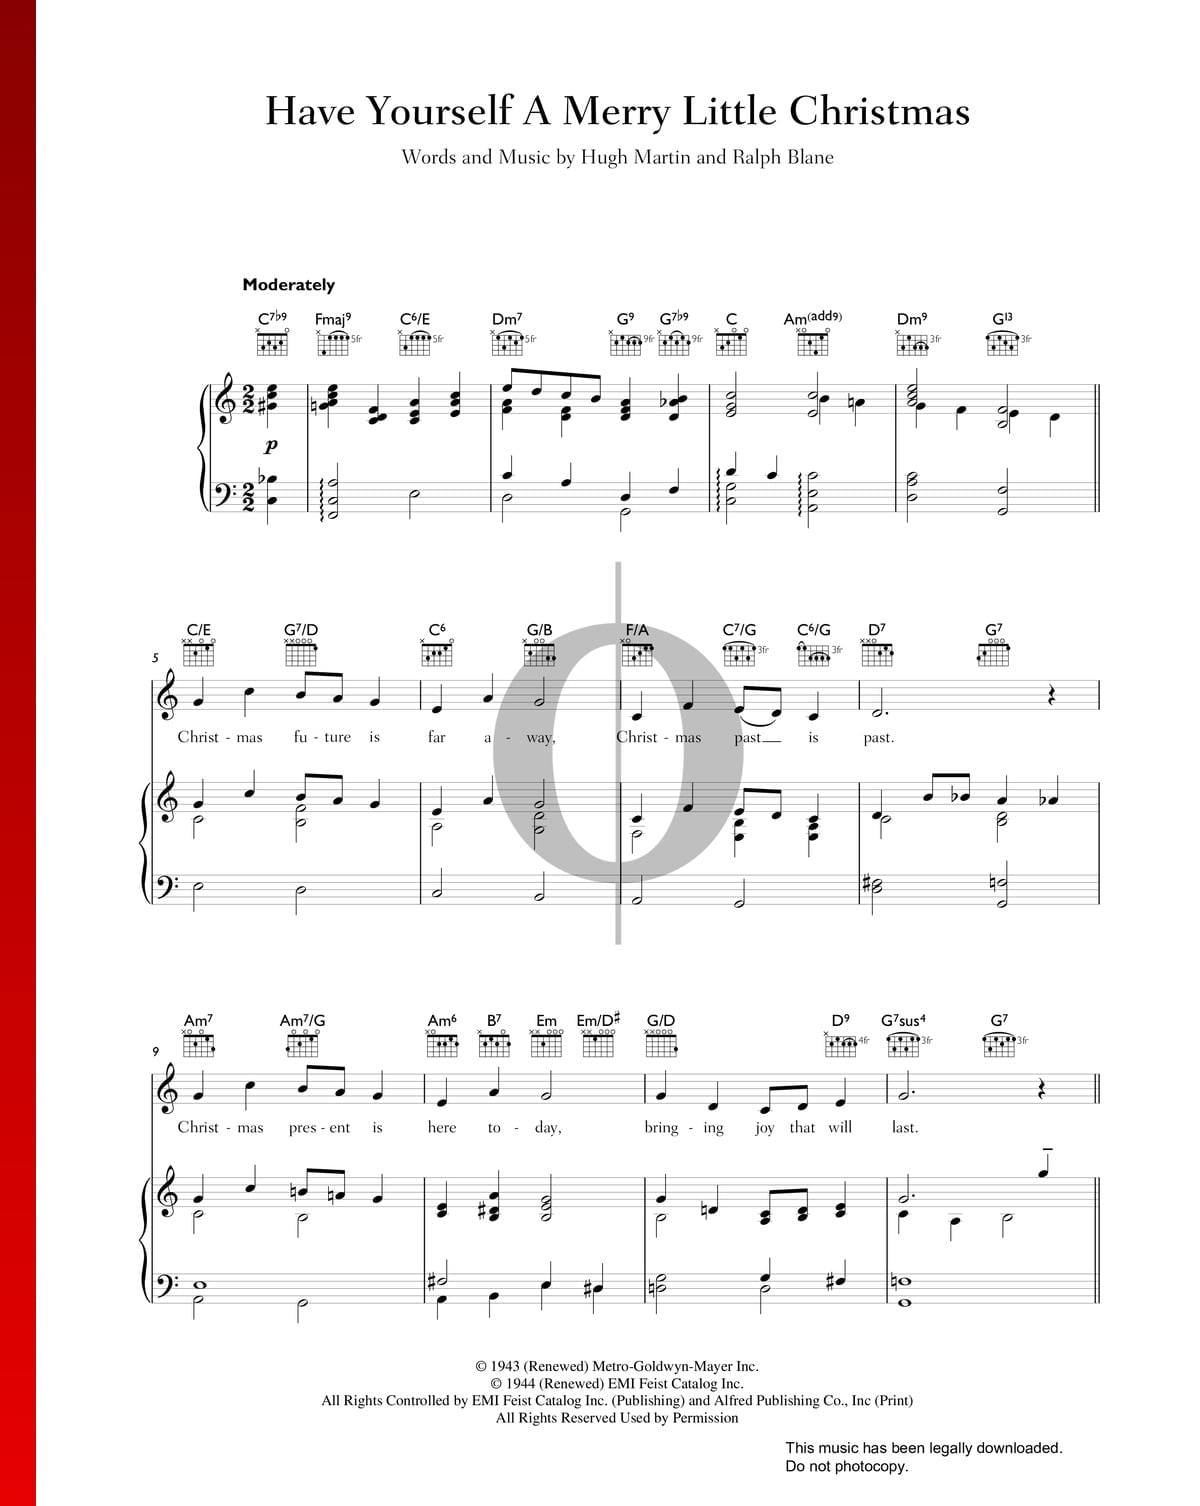 Have Yourself A Merry Little Christmas Piano Music.Have Yourself A Merry Little Christmas Sheet Music Piano